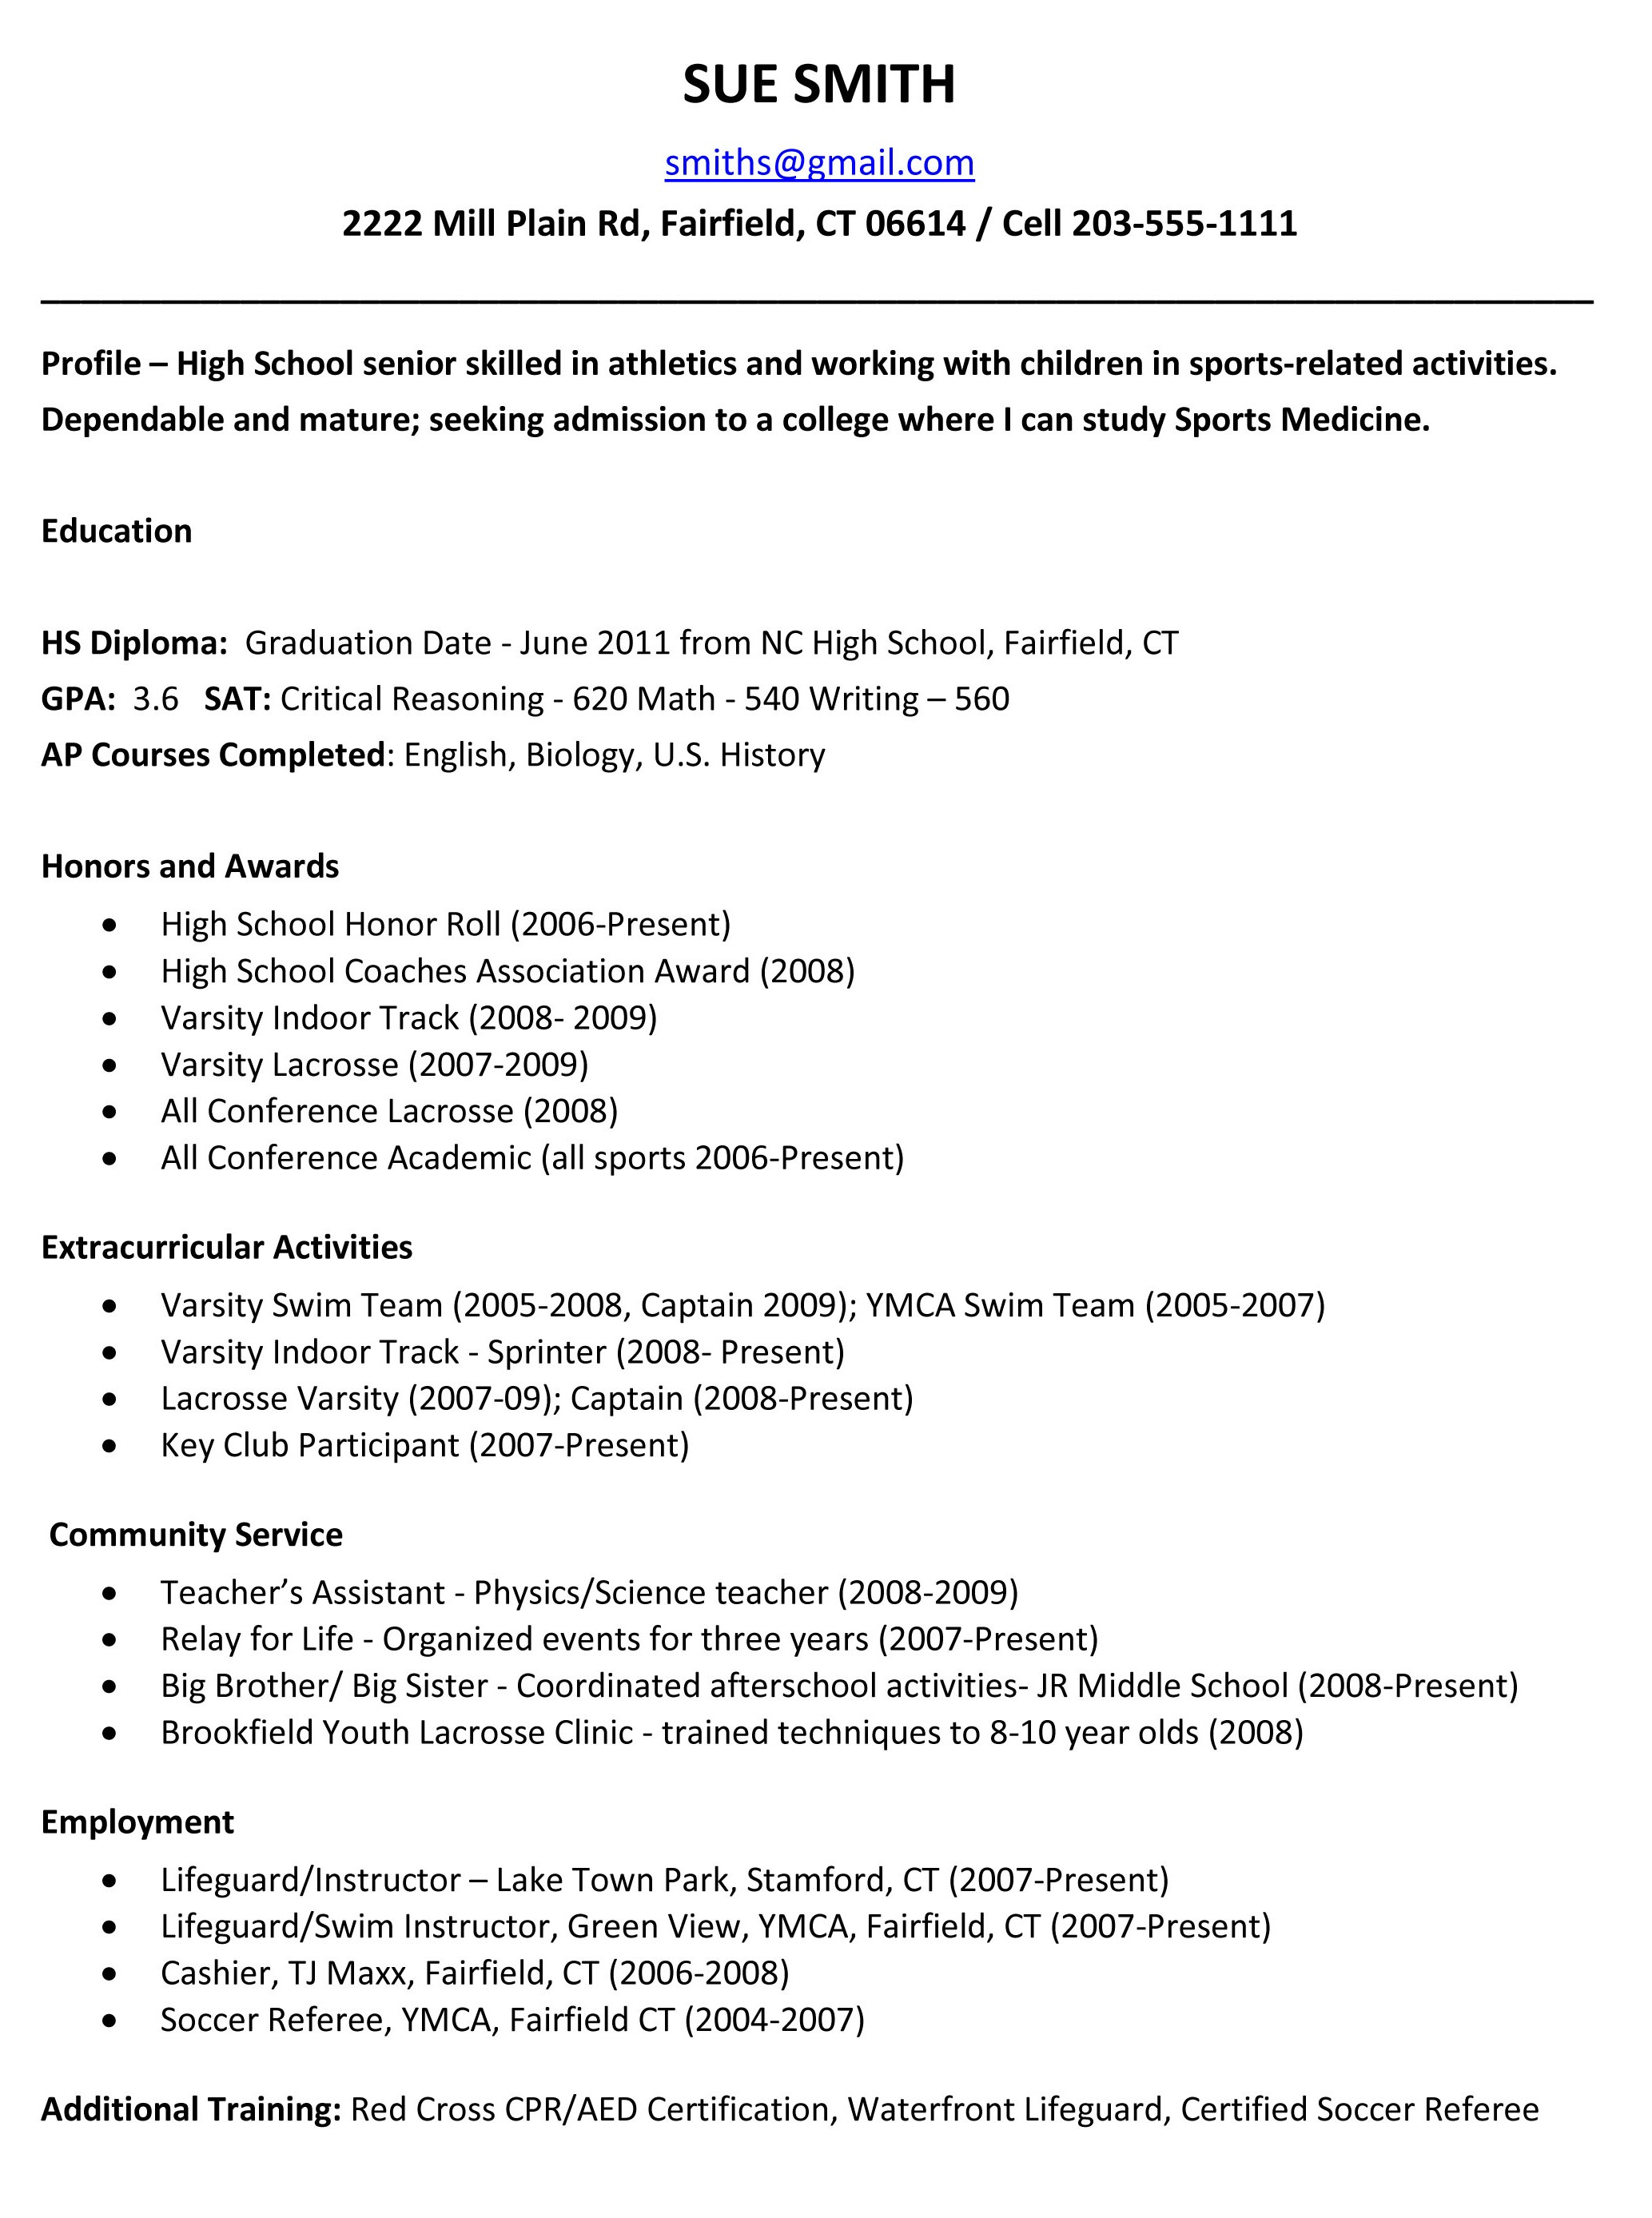 College Resume Sample High School Senior. for college students ...